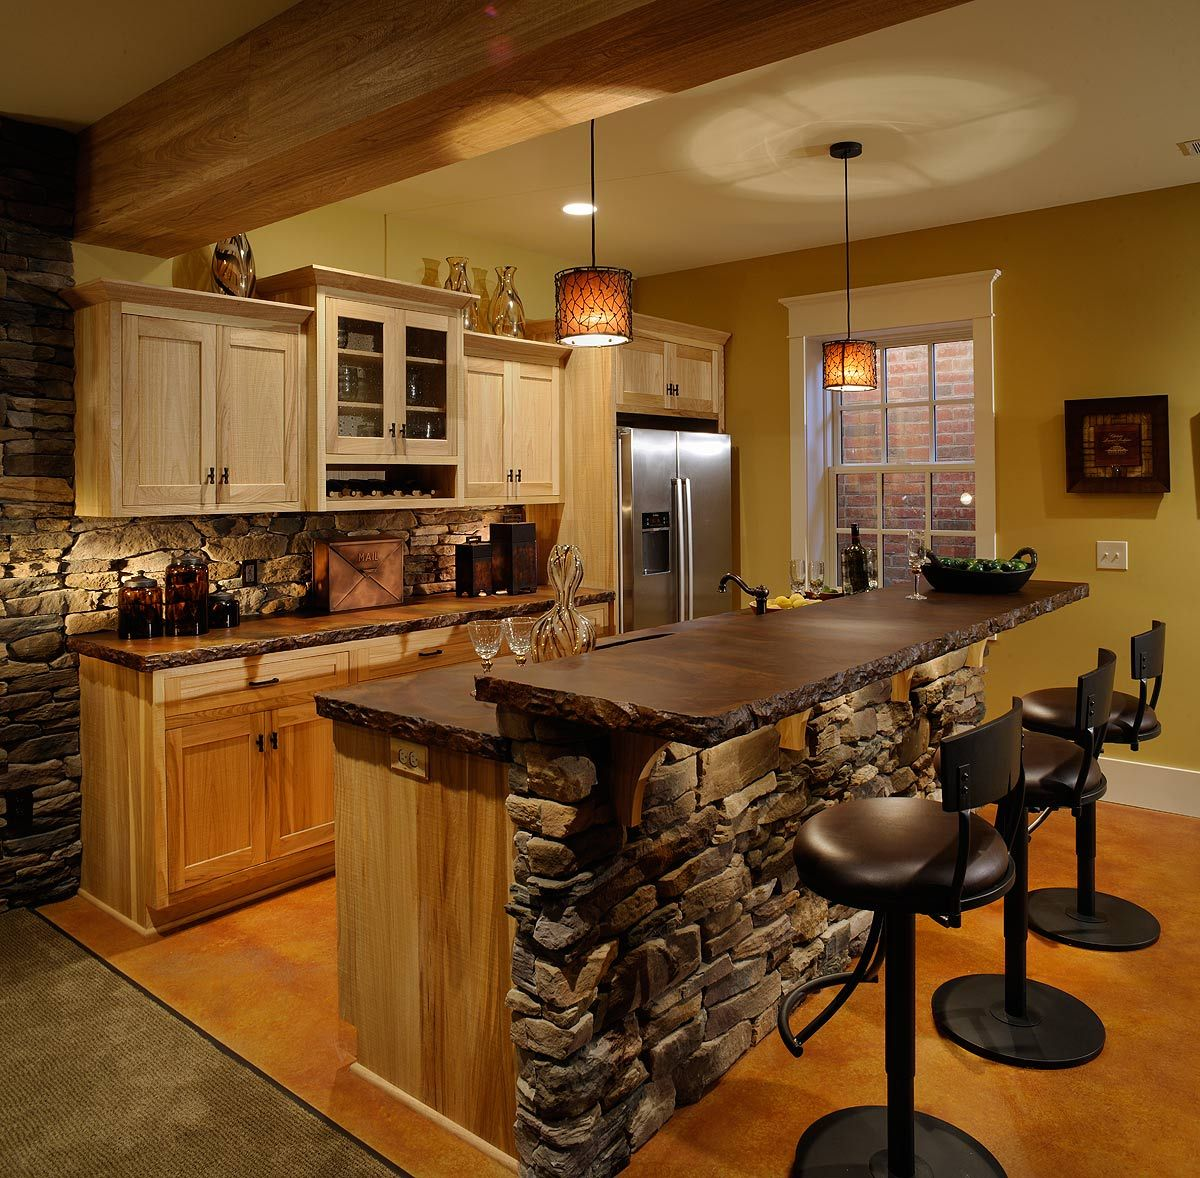 Design Kitchen Bar Designs 15 rustic kitchen design photos mullets ohio and cabin photos